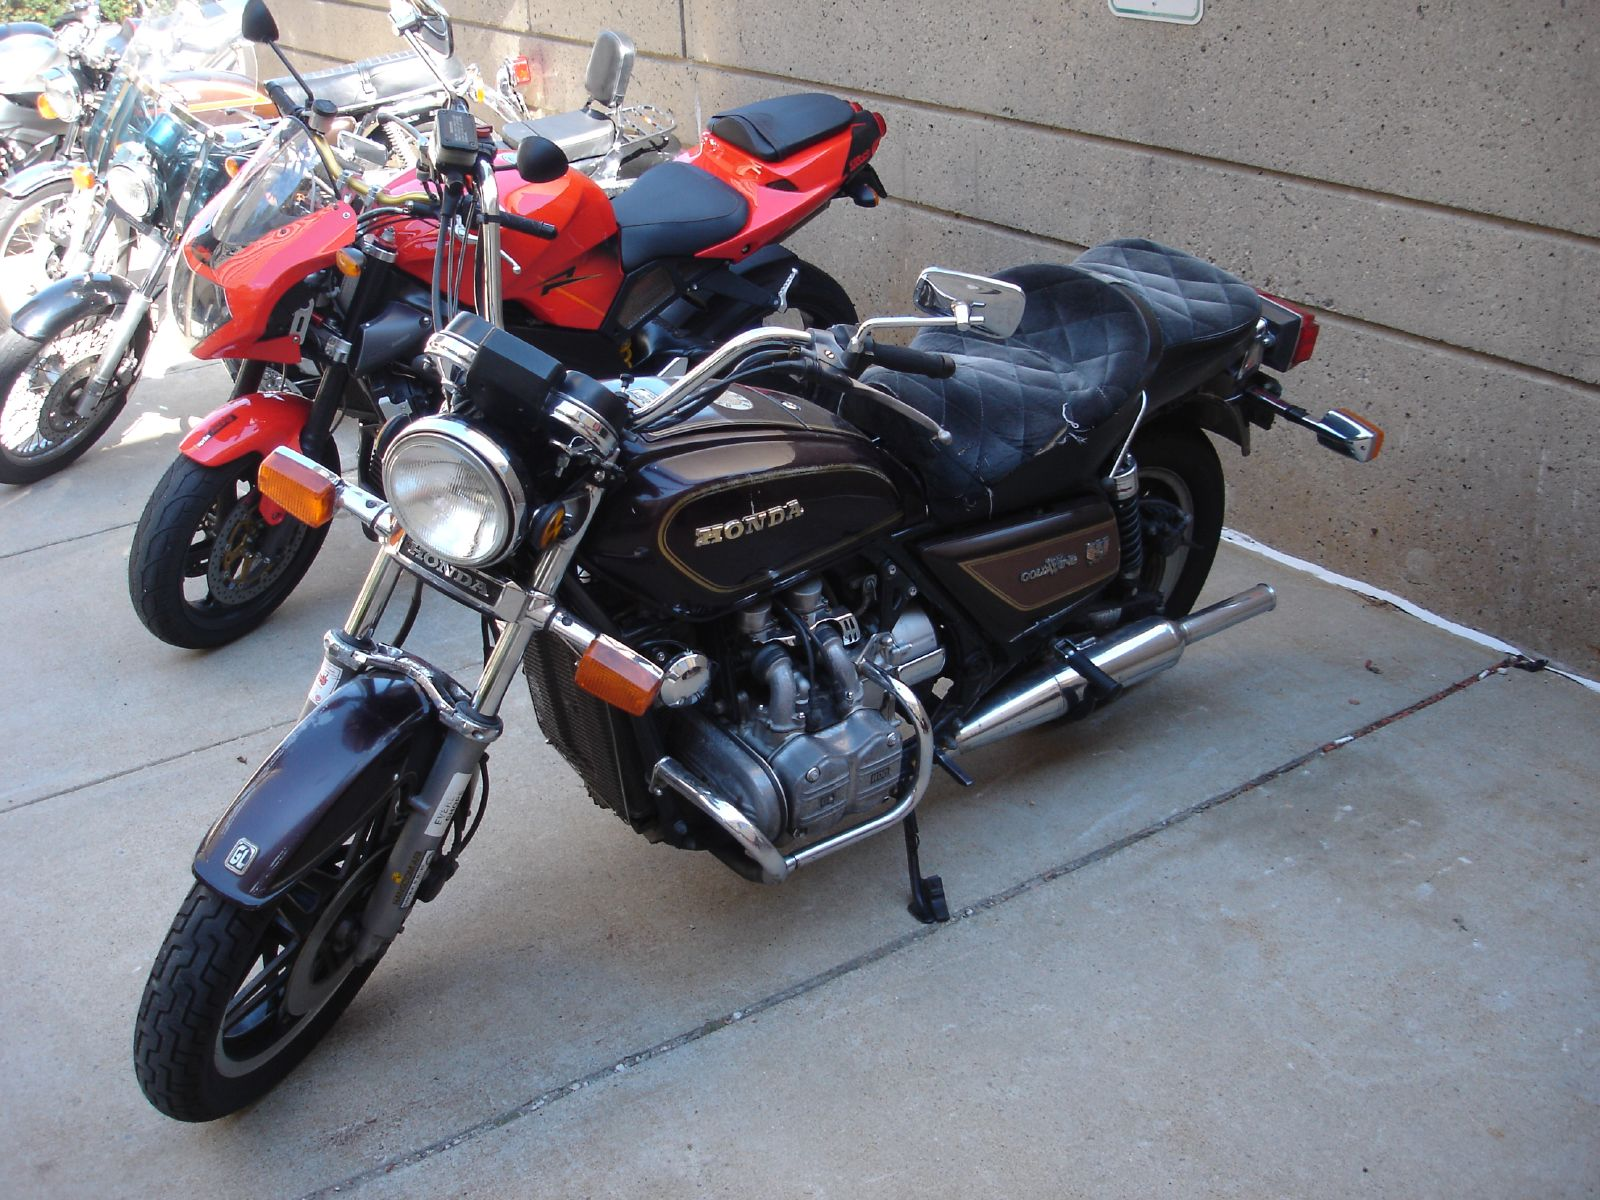 1982 honda magna wiring diagram with File 1980 Honda Goldwing Gl on 597943 in addition Chapter22 02 MagnaWiringDiagramsmall furthermore Diagrams in addition Honda Gold Wing Gl1500 Audio System Radio Wiring Diagram furthermore Shadow Honda 83 Wiring Diagram.